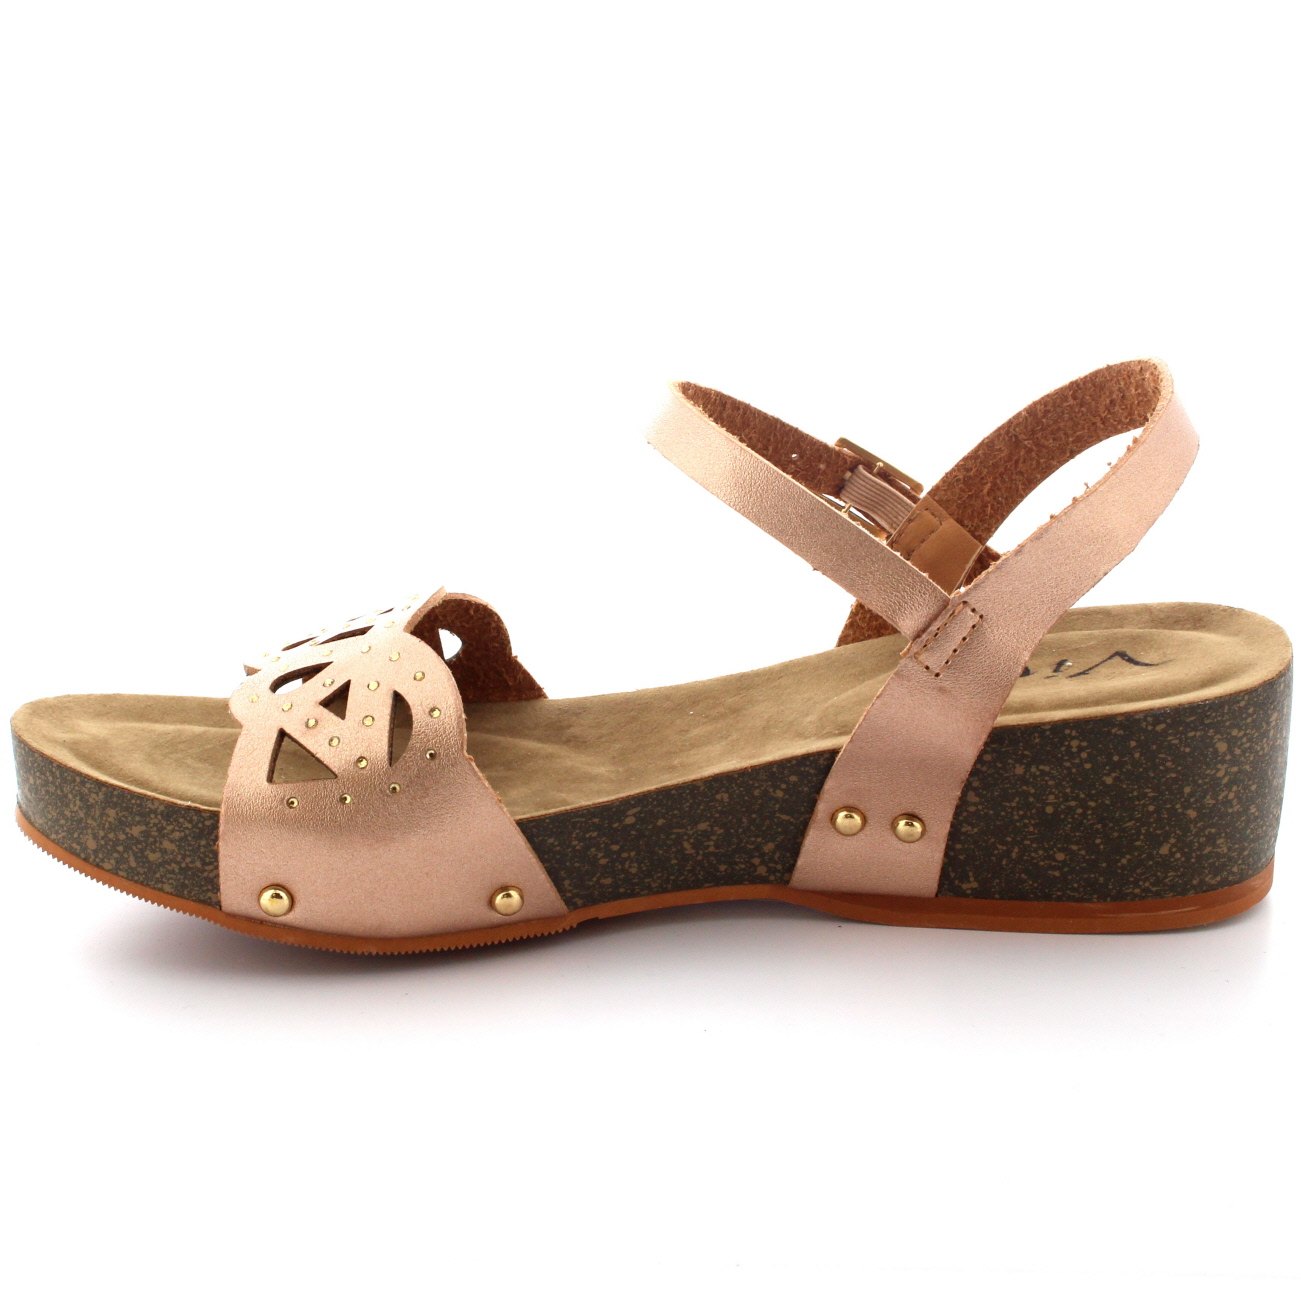 Let Dillard's be your destination for women's wedges, available in regular and extended sizes.